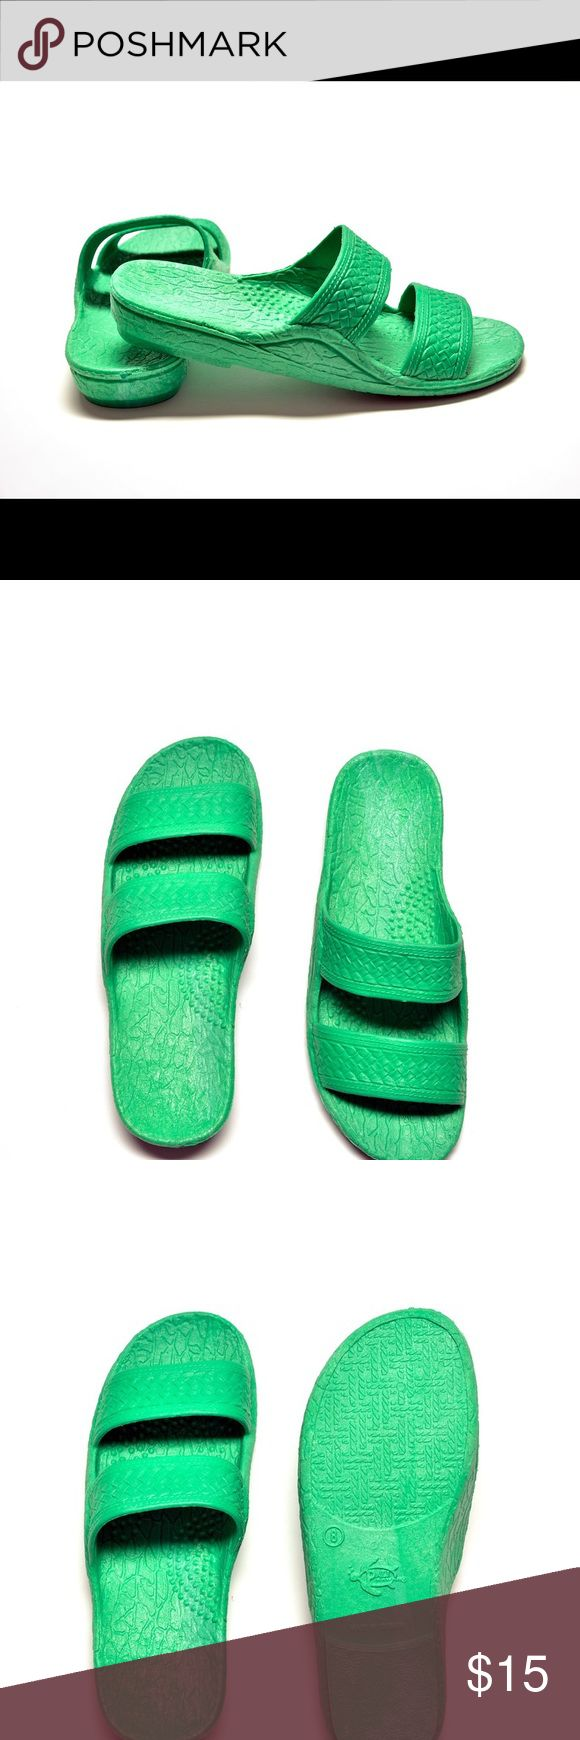 NWT Authentic Original Pali Hawaii Jesus Sandals Brand New Pali Hawaii Jesus Sandals in Spring Green.  Super comfy!  Best shoes you will ever wear!! Shoes Sandals